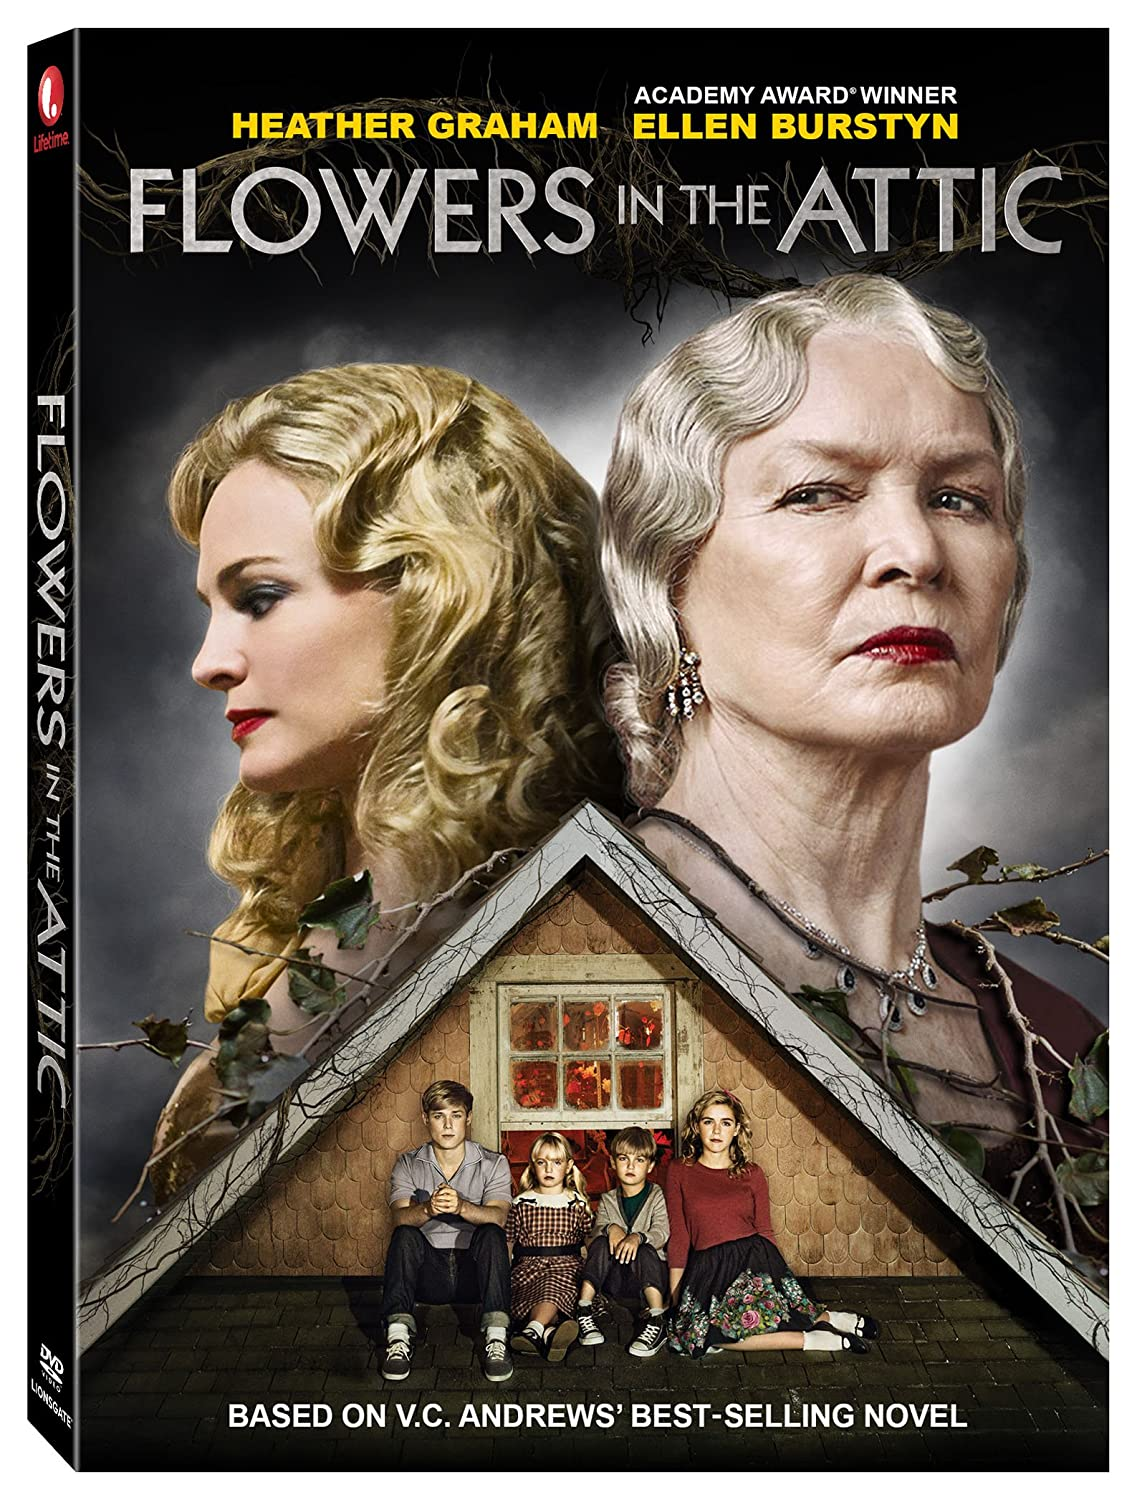 amazon com flowers in the attic dvd flowers in the attic